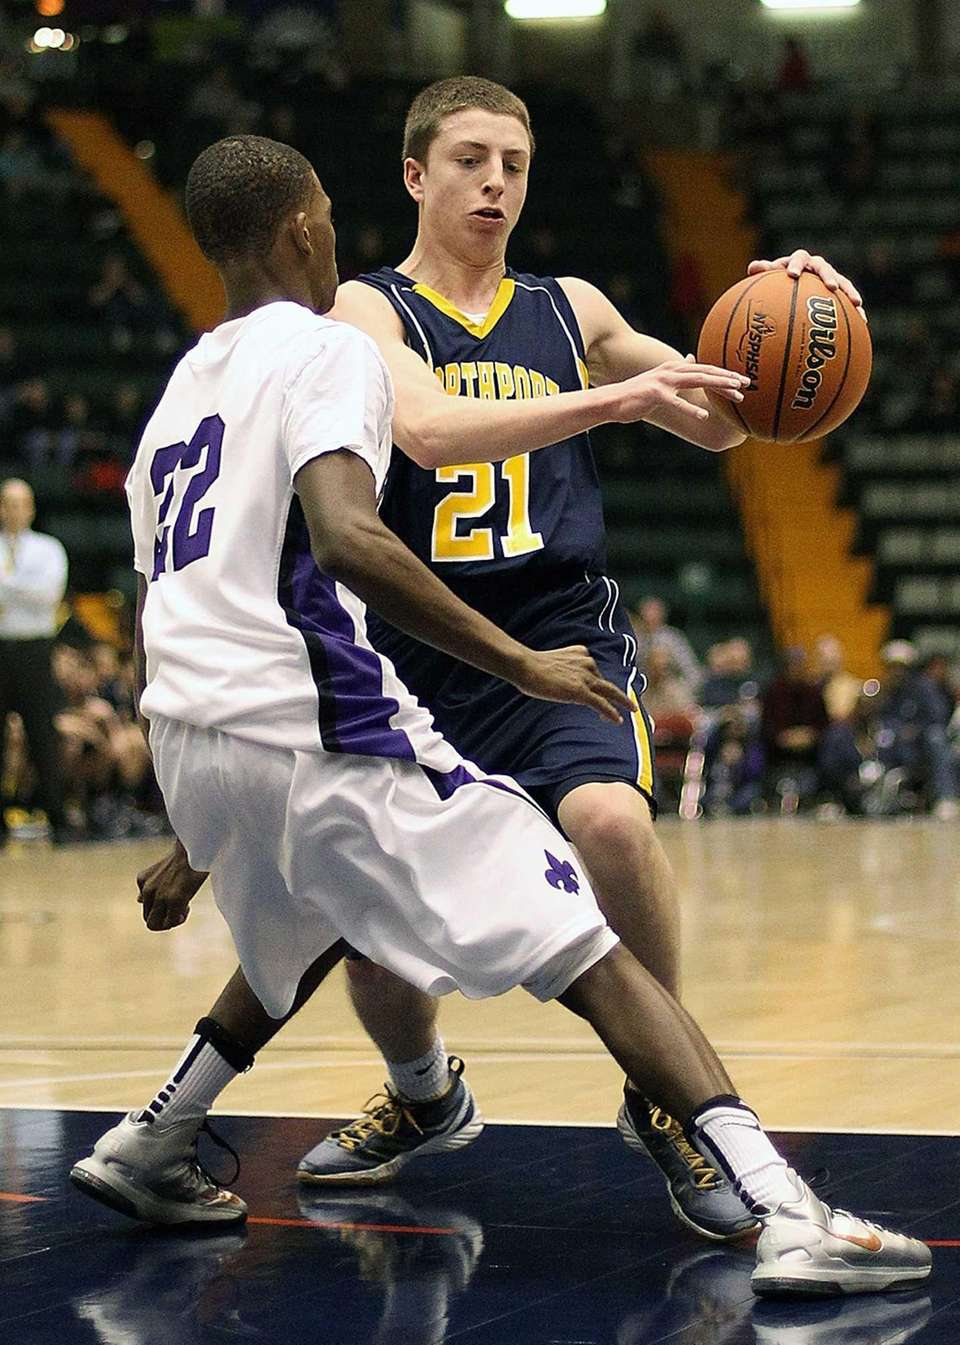 Northport's Austin Marchese moves down court during the